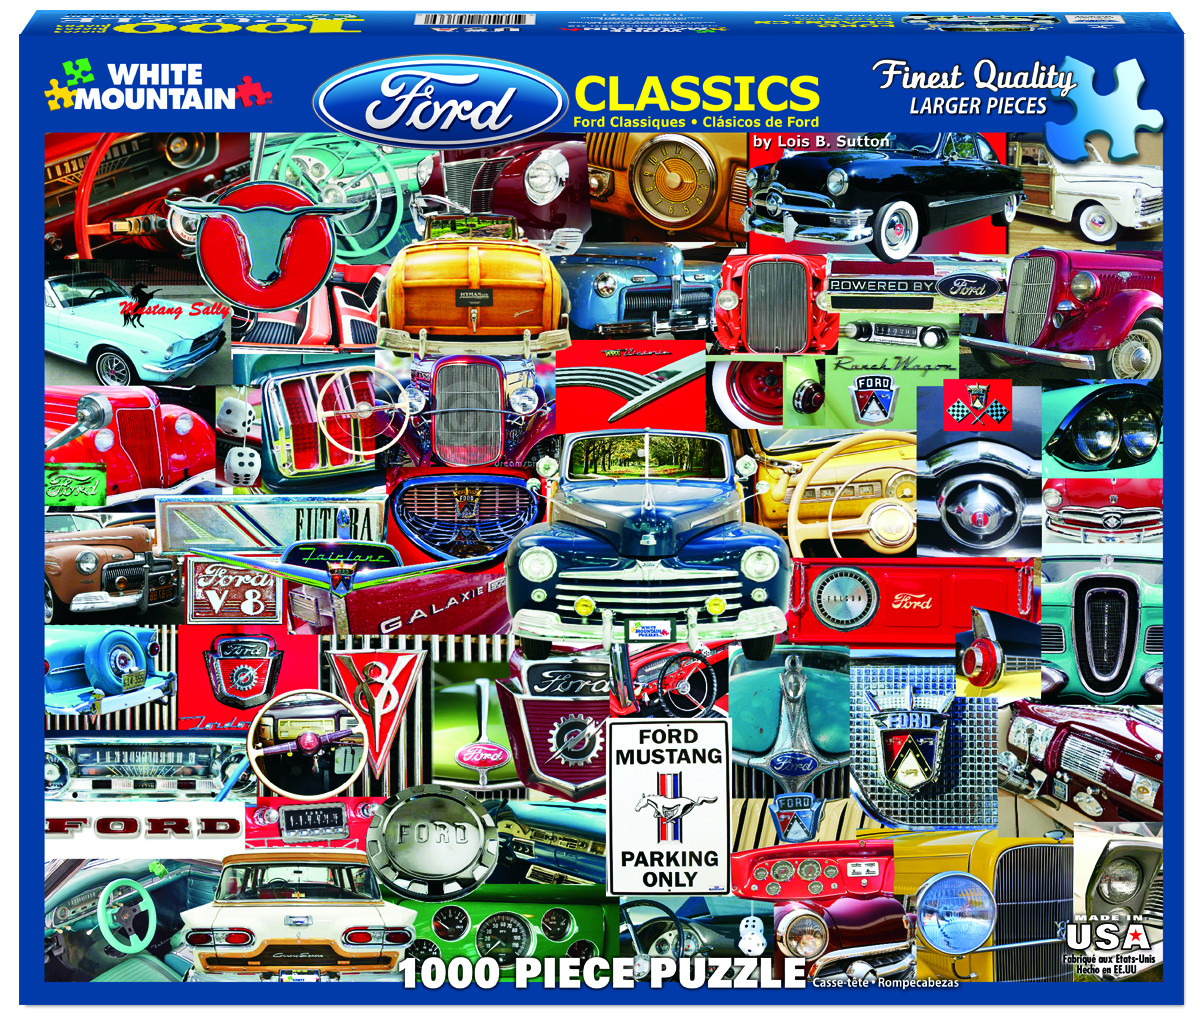 Ford Classics - Scratch and Dent Cars Jigsaw Puzzle